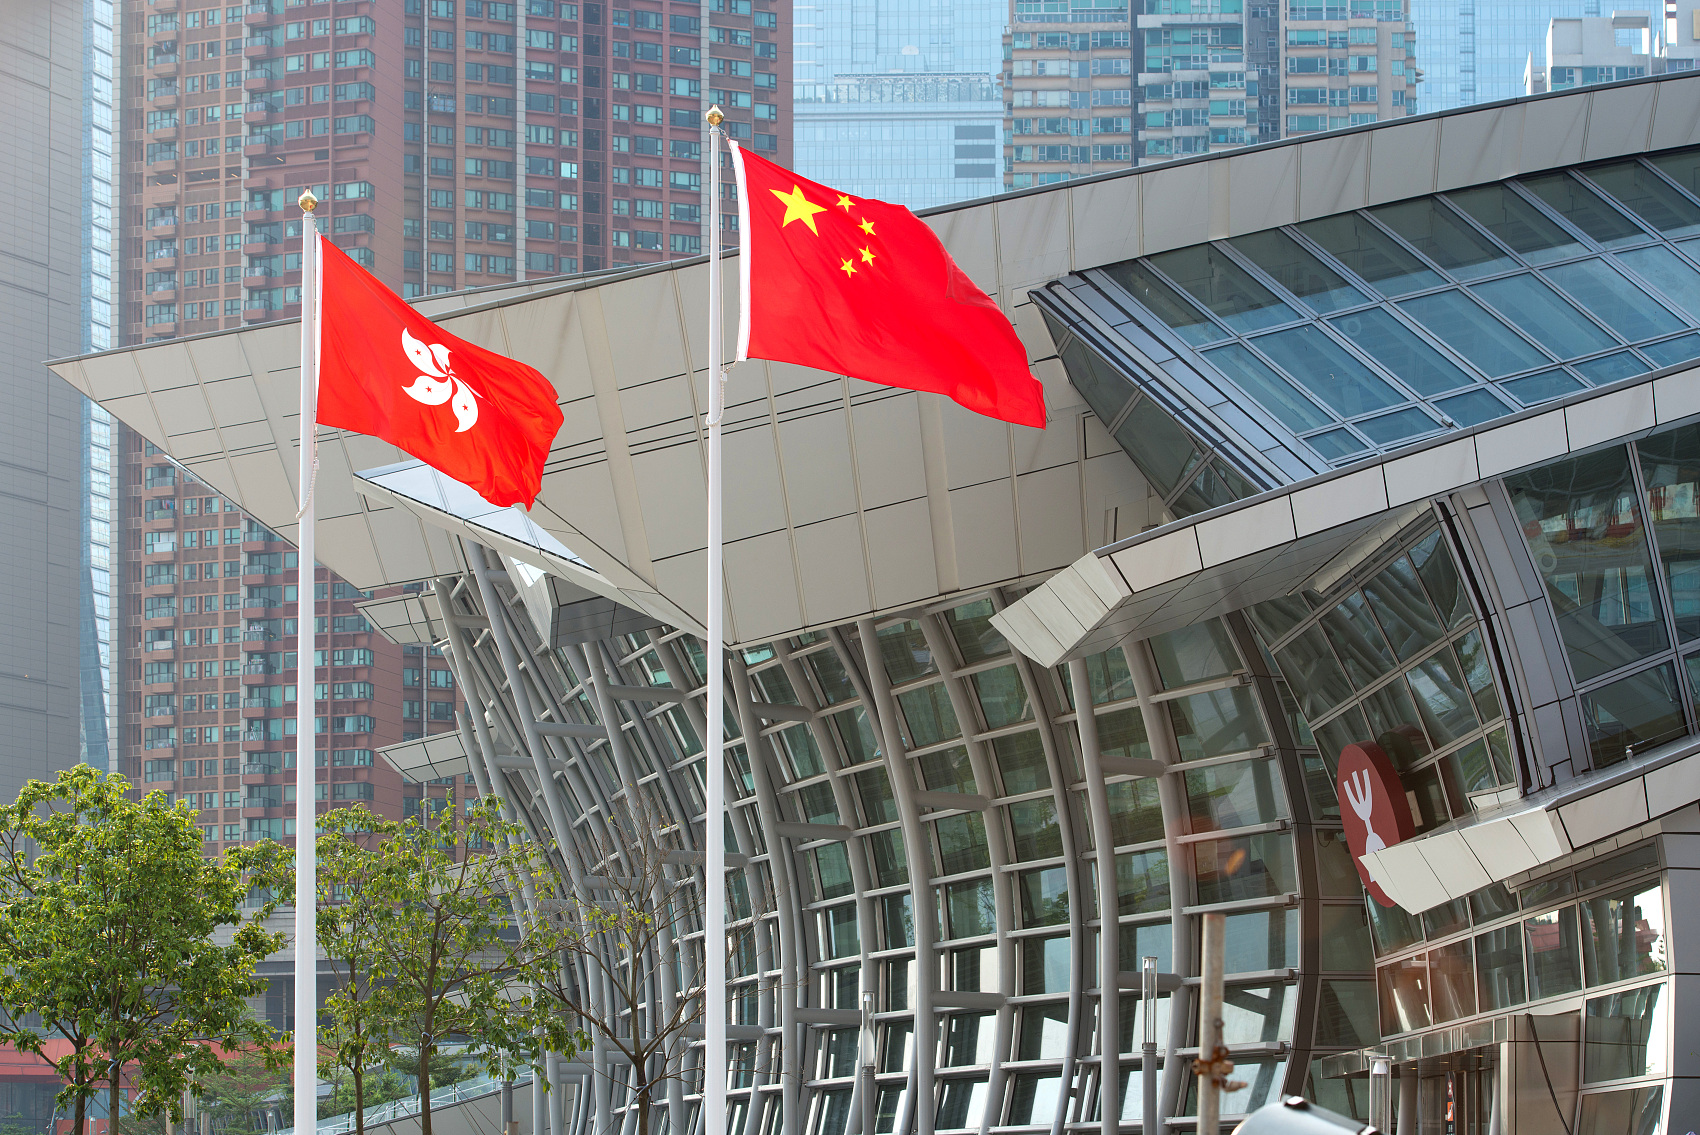 HK's education must hold fast to right direction of 'one country, two systems': spokesperson